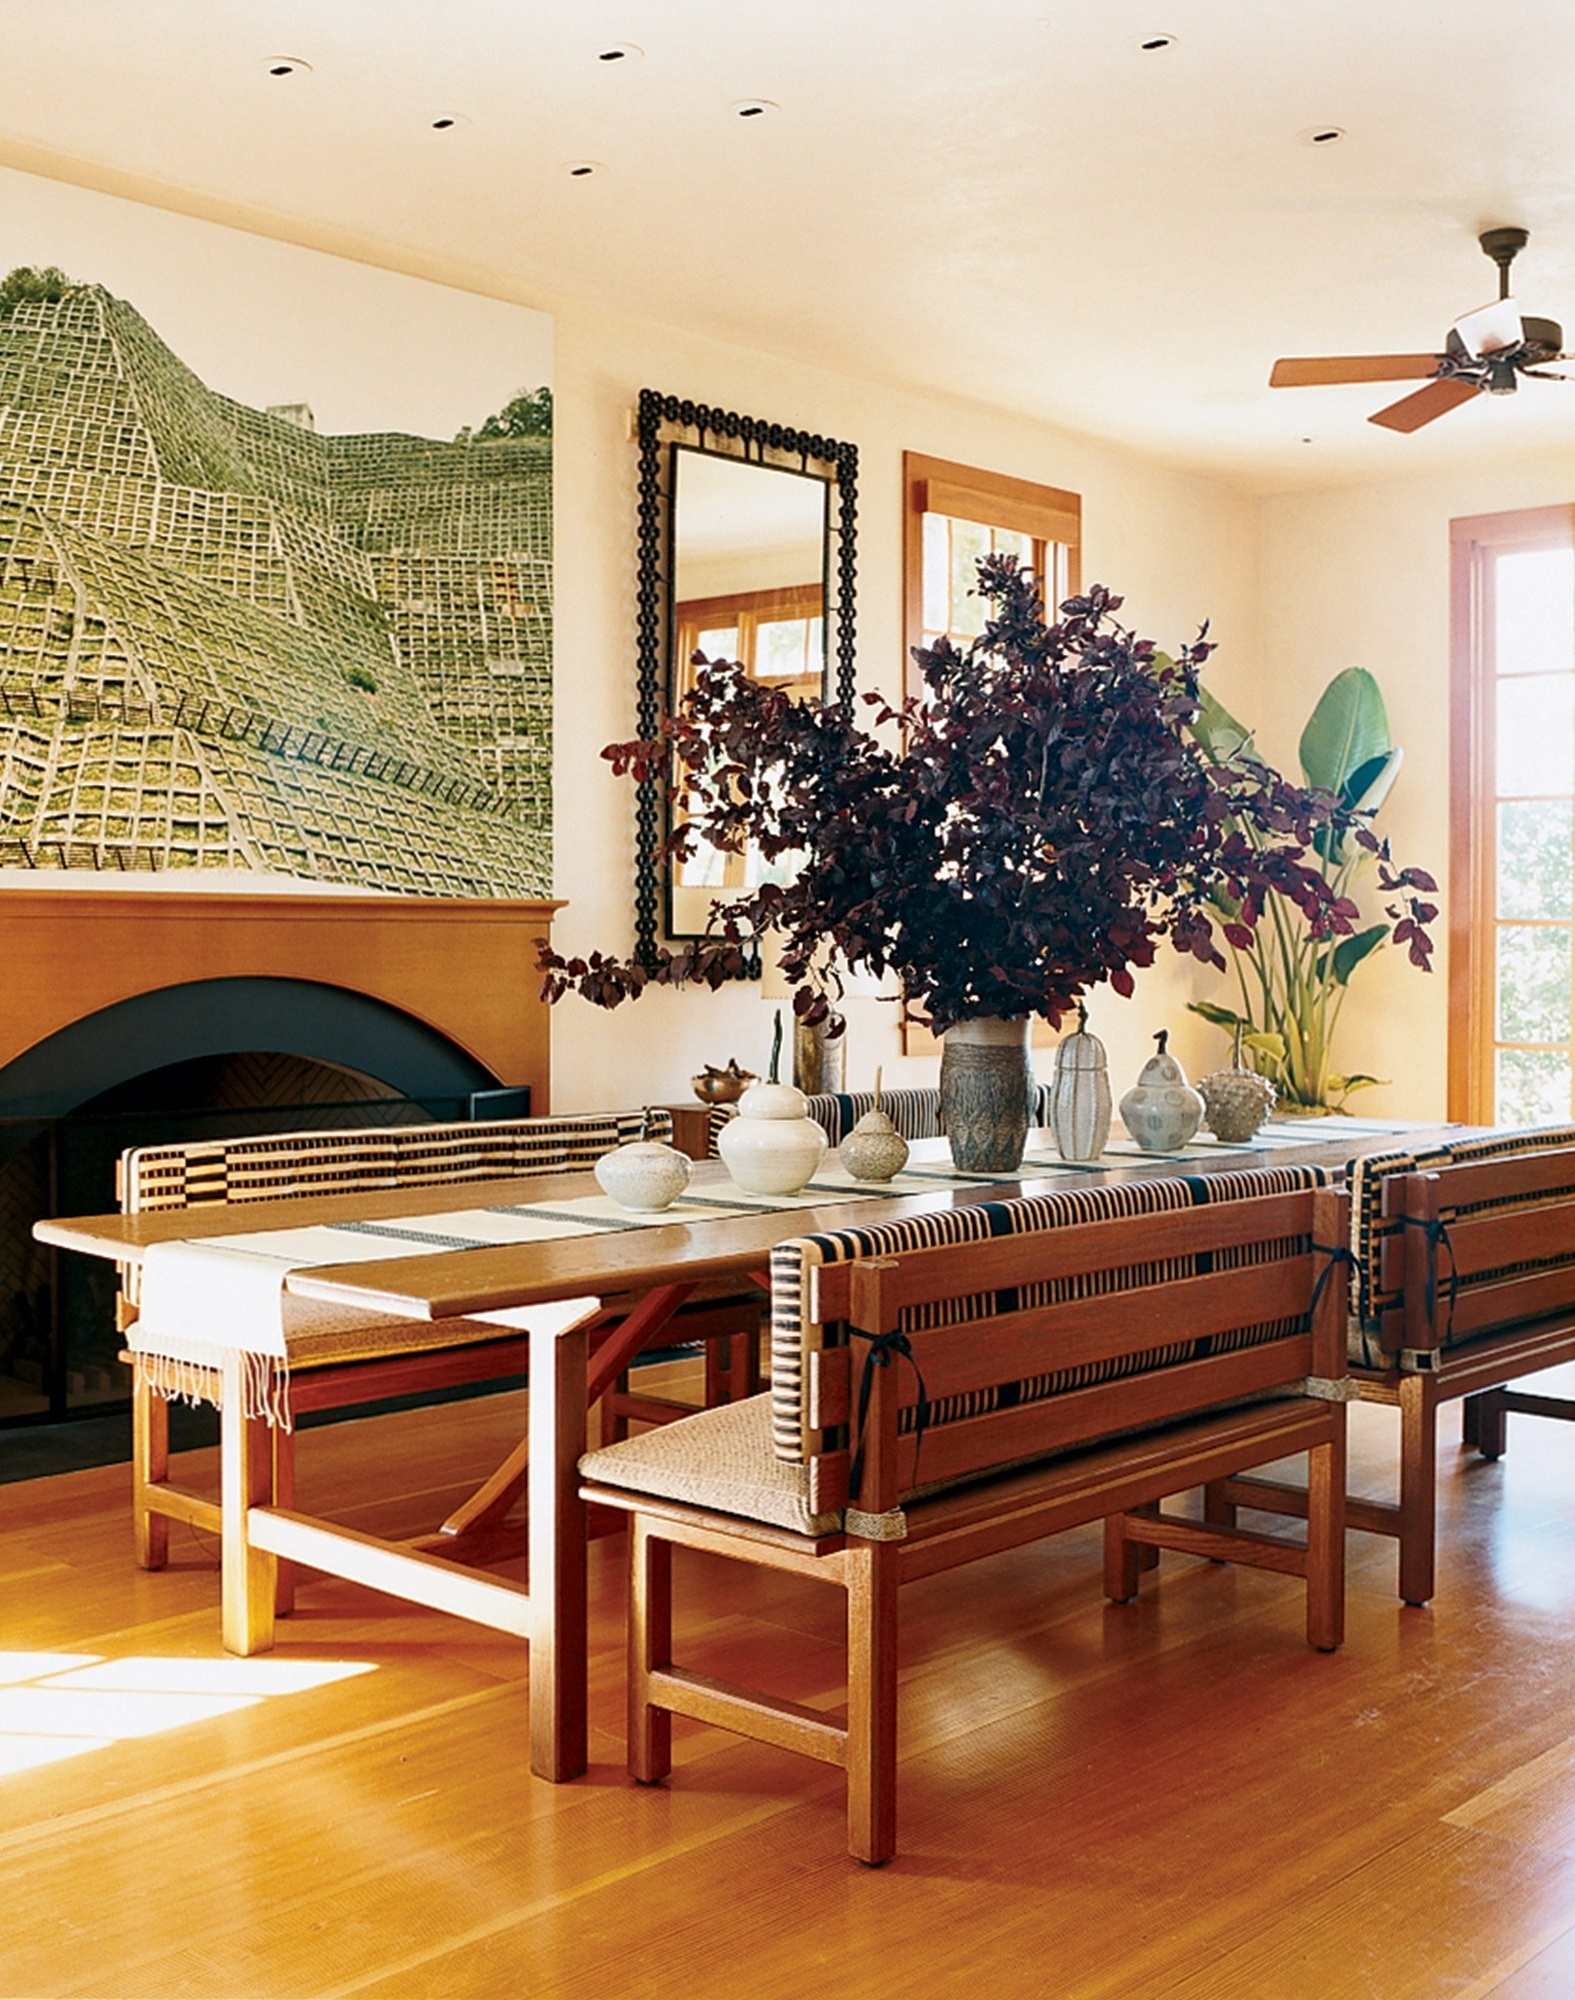 A Look At 30 Dining Rooms In Vogue – Vogue Intended For Most Up To Date Vogue Dining Tables (View 1 of 25)